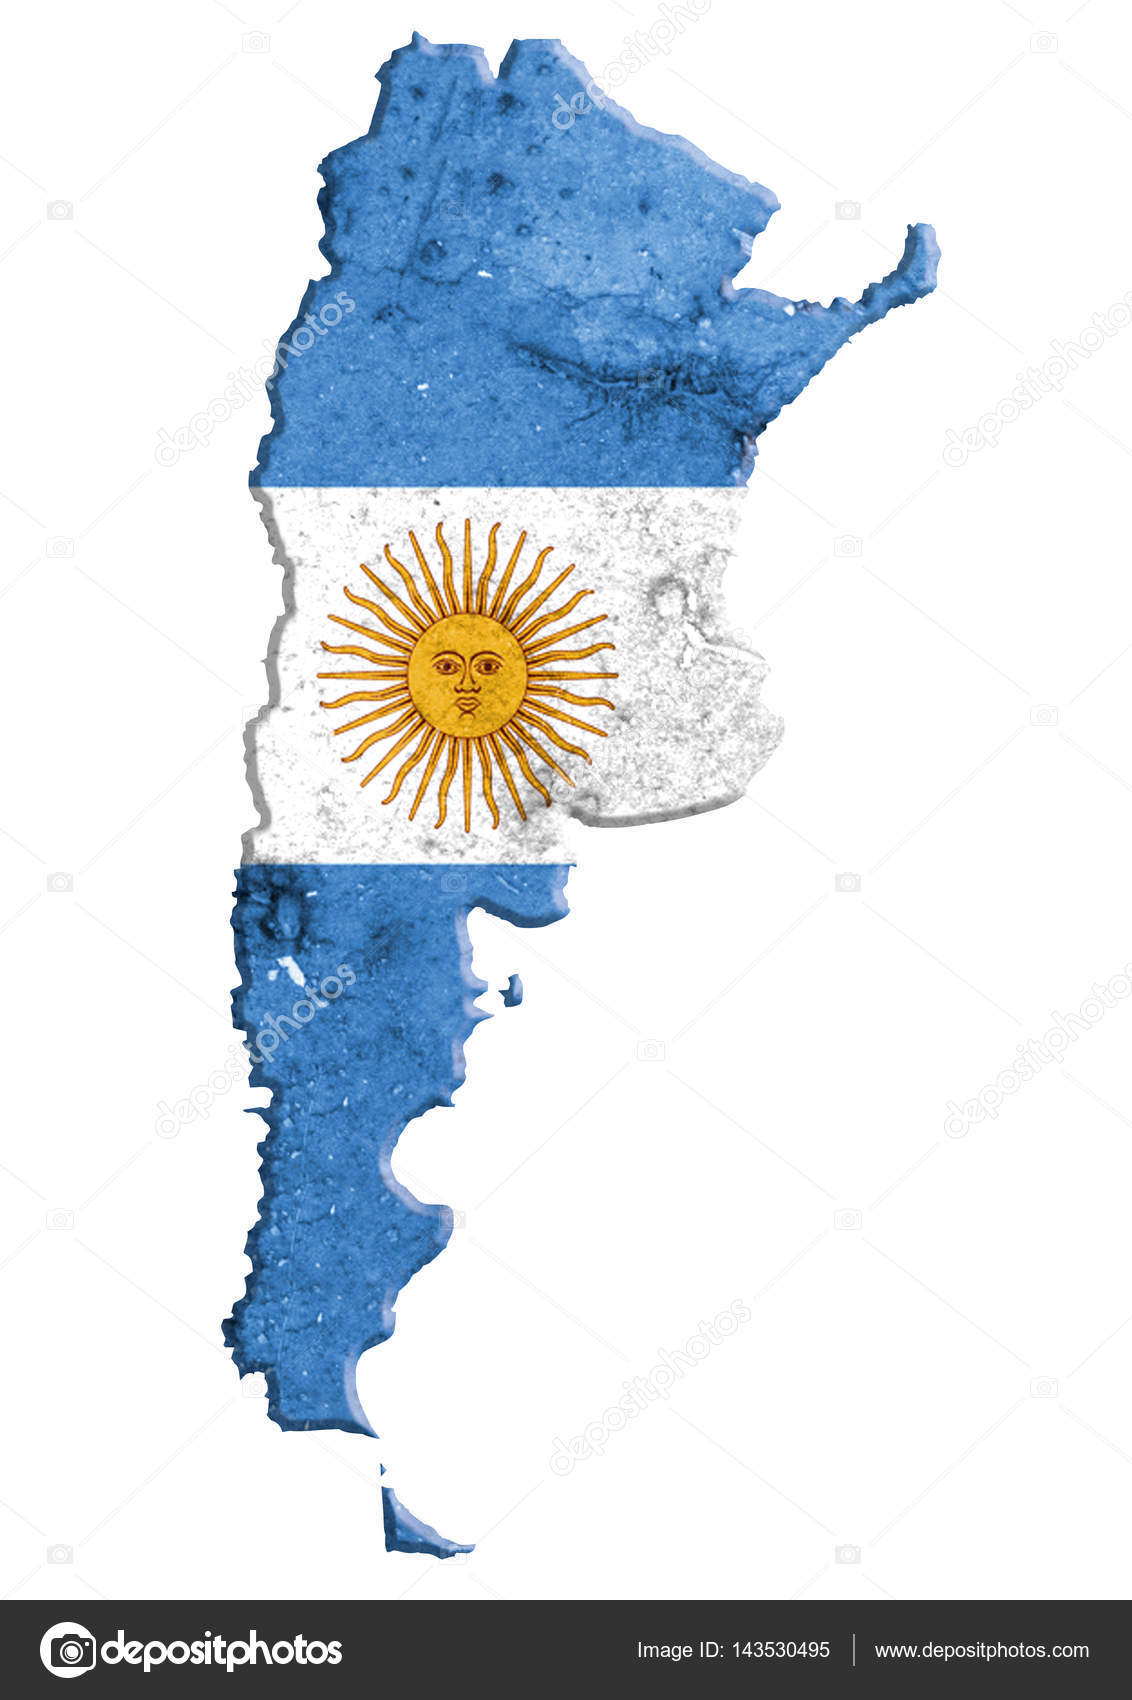 Argentina National Flag Image